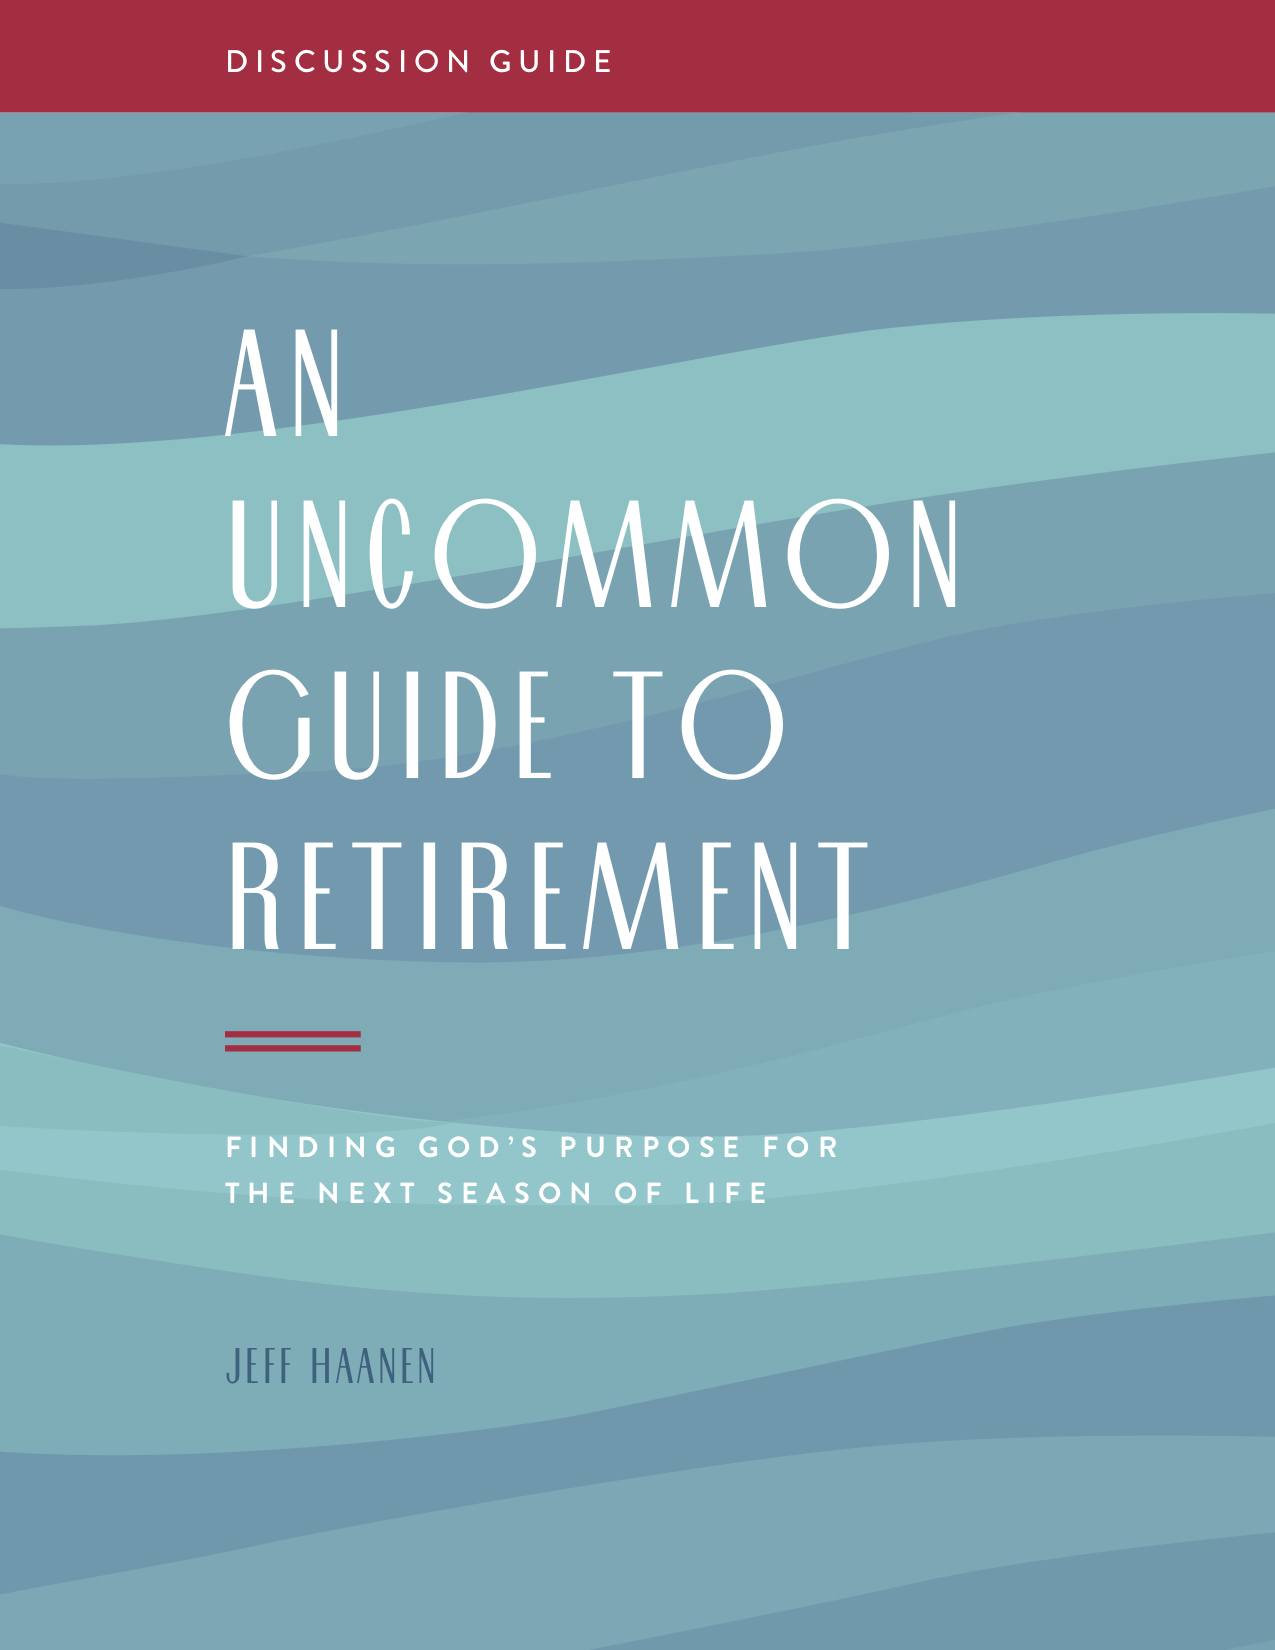 mp_retirement_discussion_guide_2019.jpg